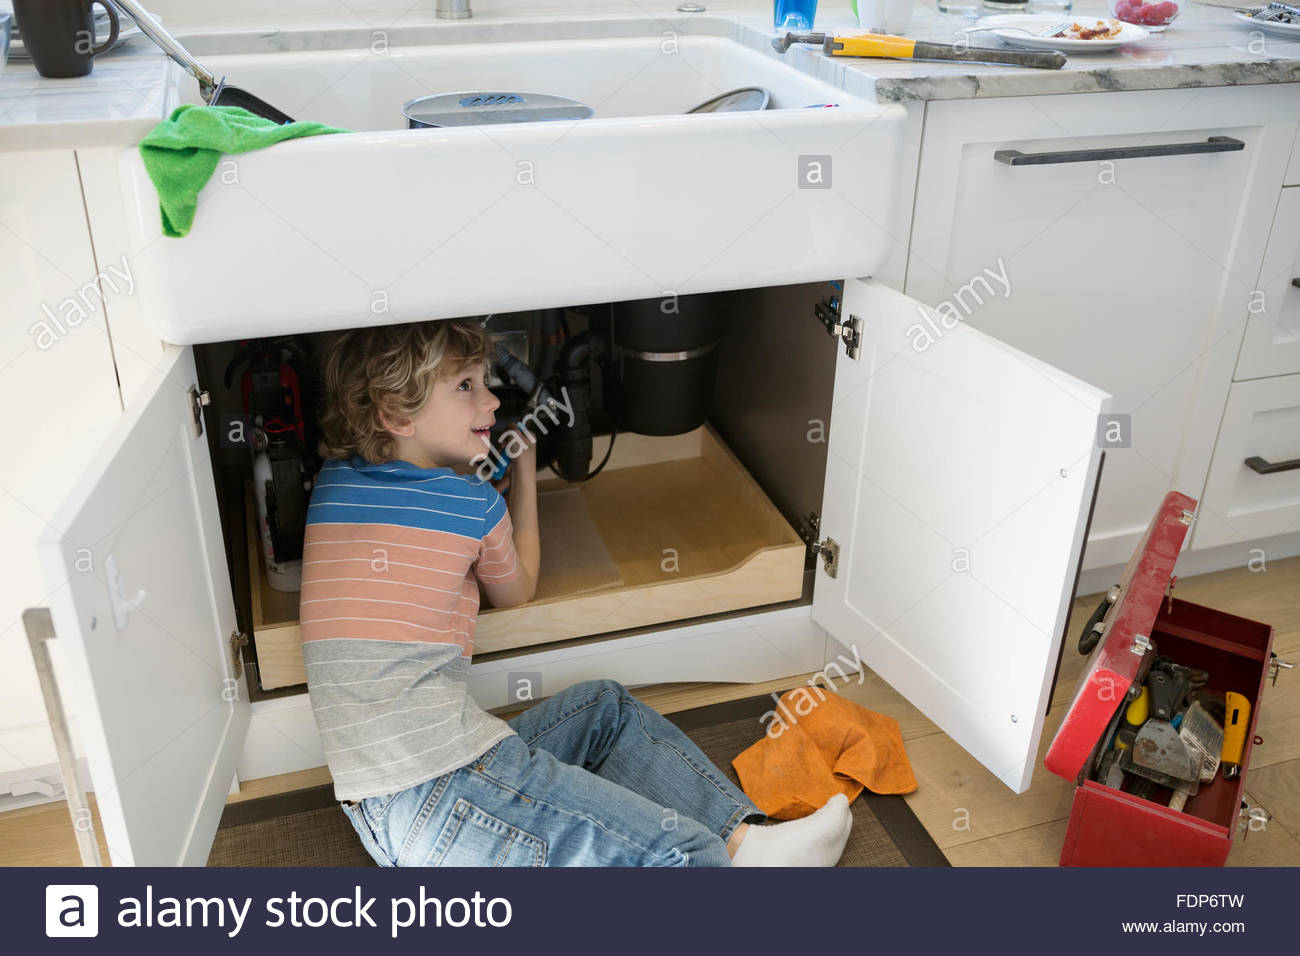 Boy trying to fix pipe under kitchen sink - Stock Image